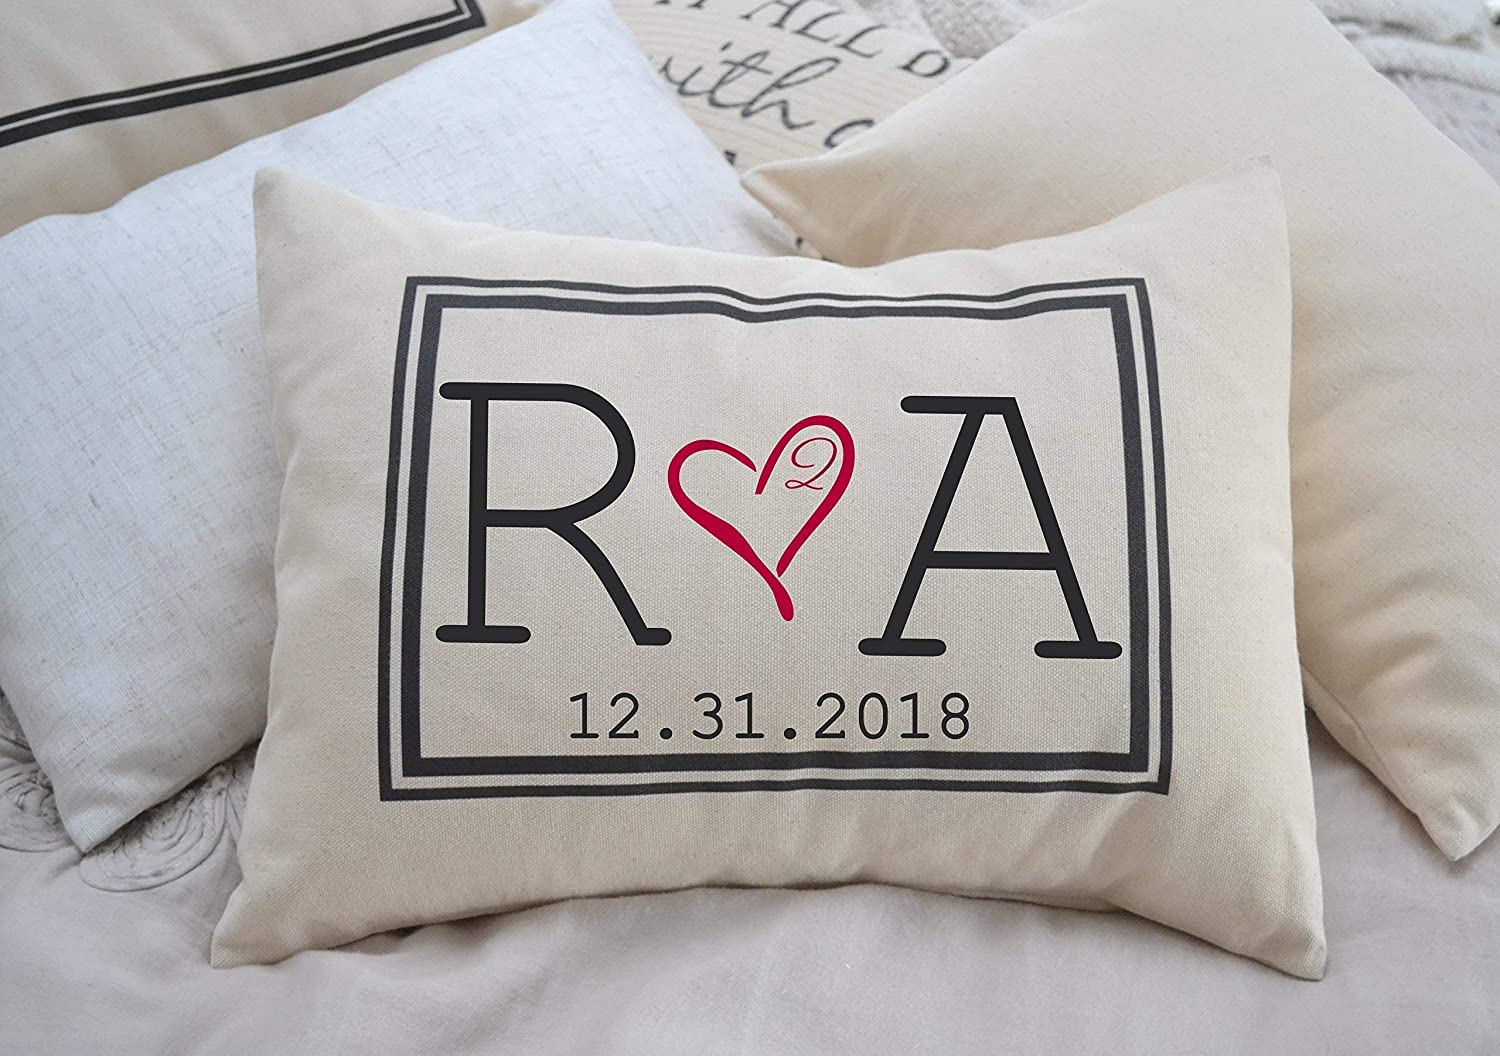 B015G4TE9C Personalized Pillow Two hearts 2 Hearts are one, with Initial Monogram and Date Second Anniversary Cotton gift 2nd anniversary Pillow 810WqVBEXAL